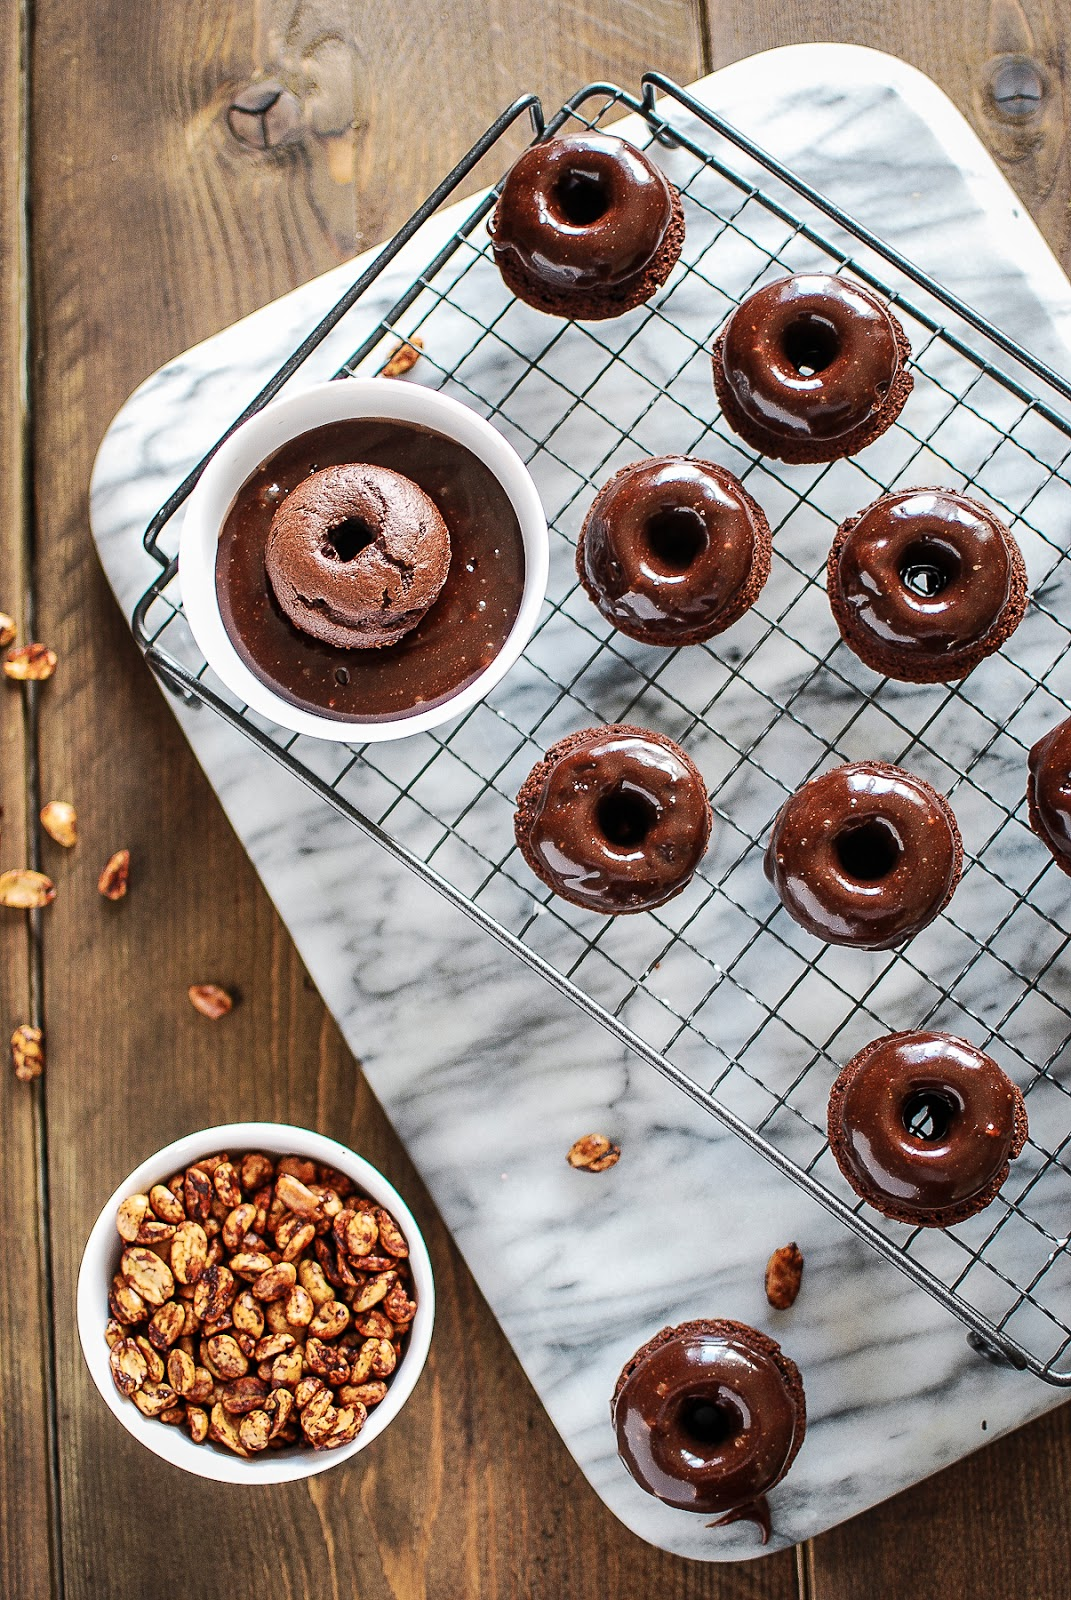 Peanut butter doughnuts with a hot sauce glaze. Hawt Damn!